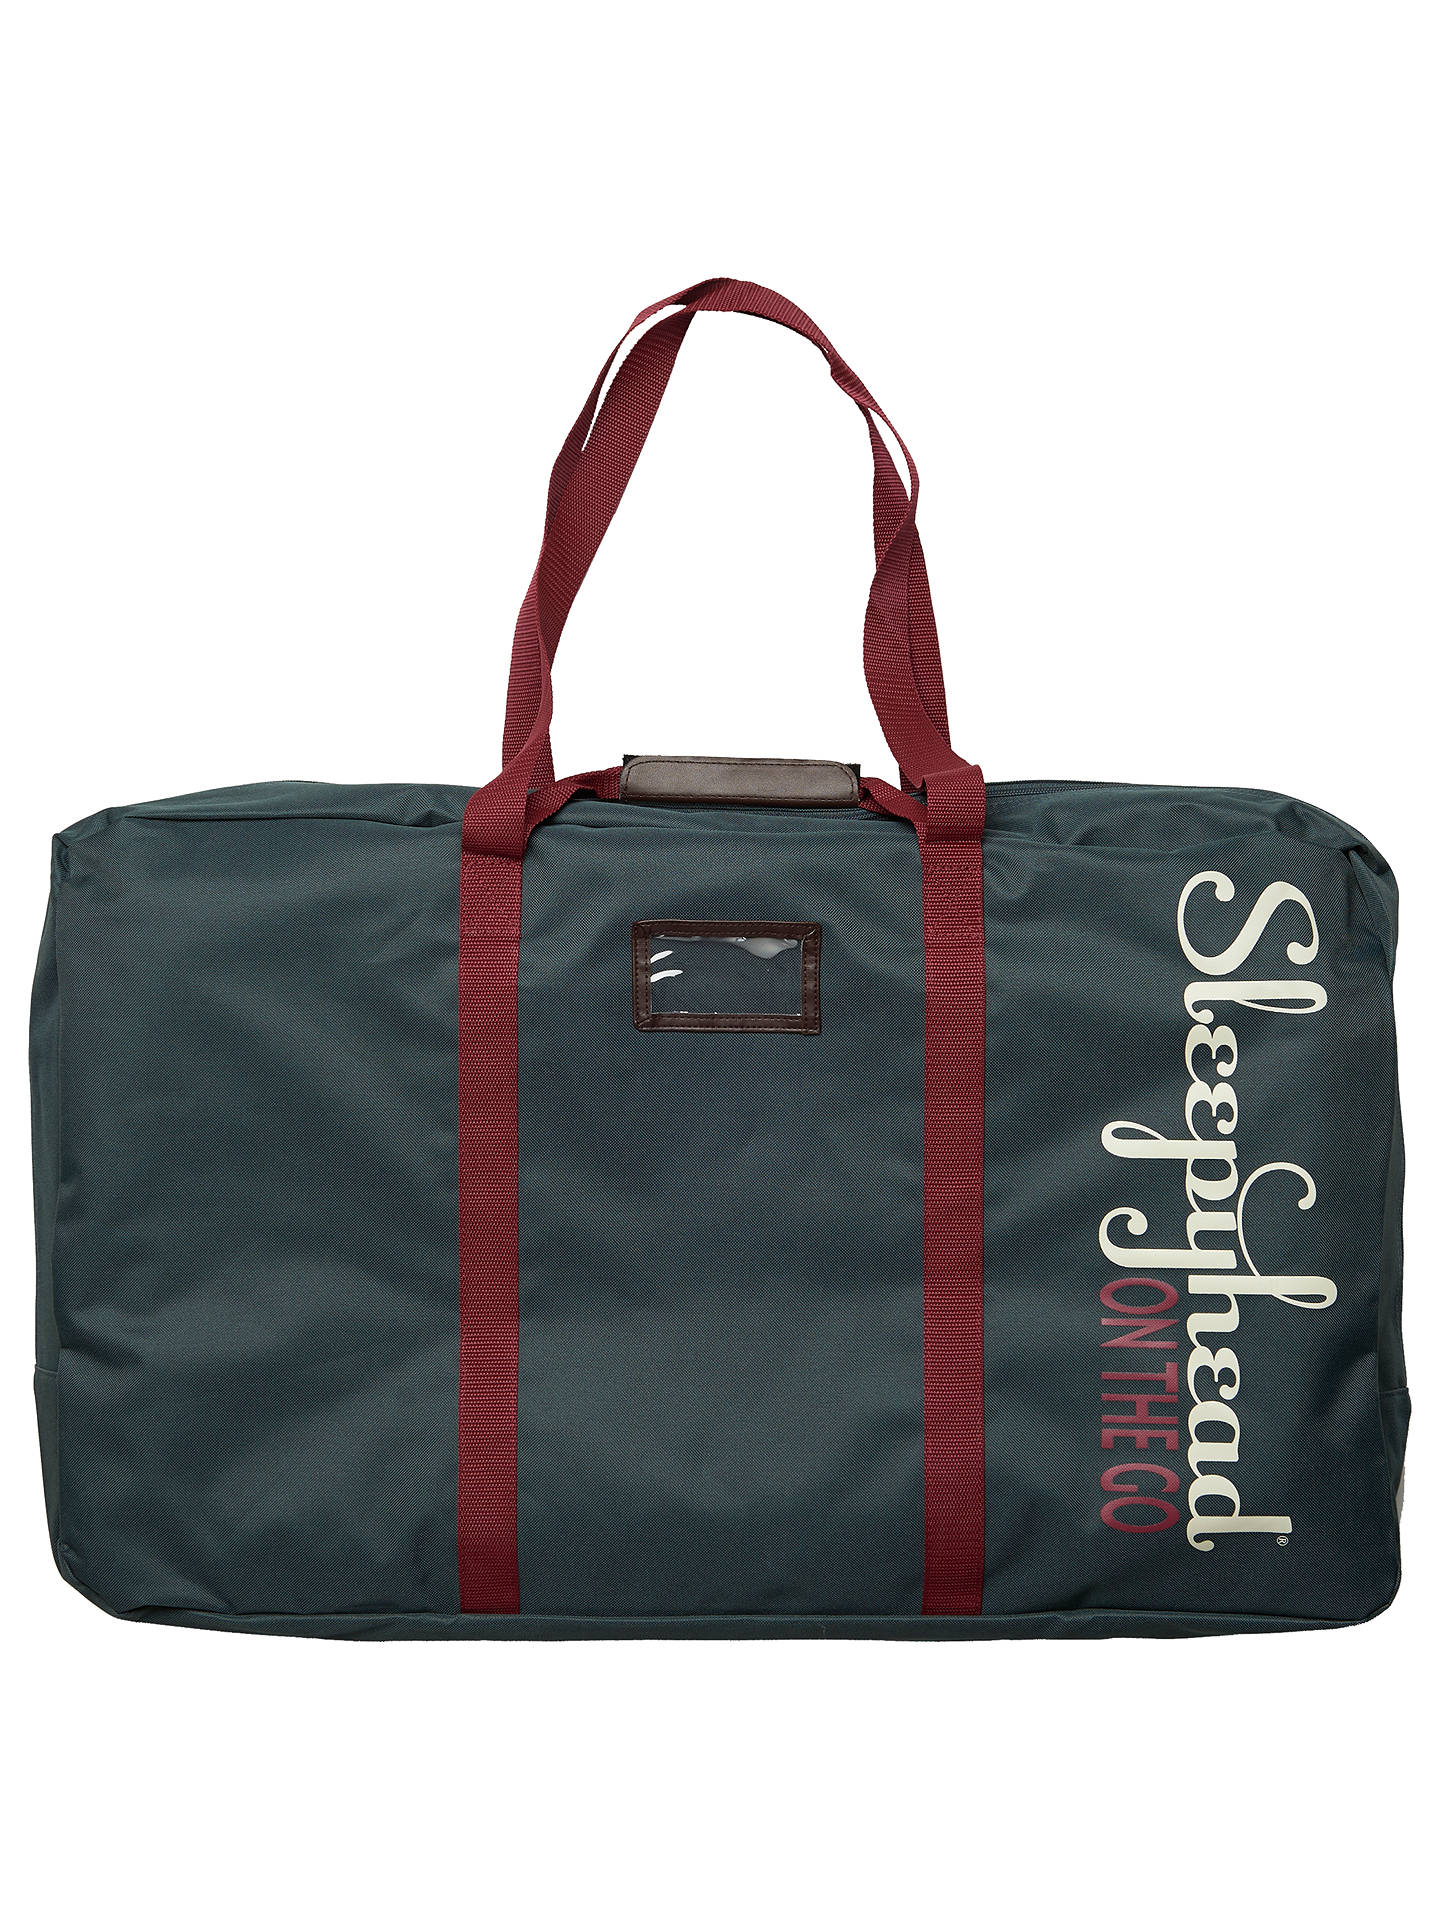 BuySleepyhead Deluxe+ Transport Bag, Teal Online at johnlewis.com